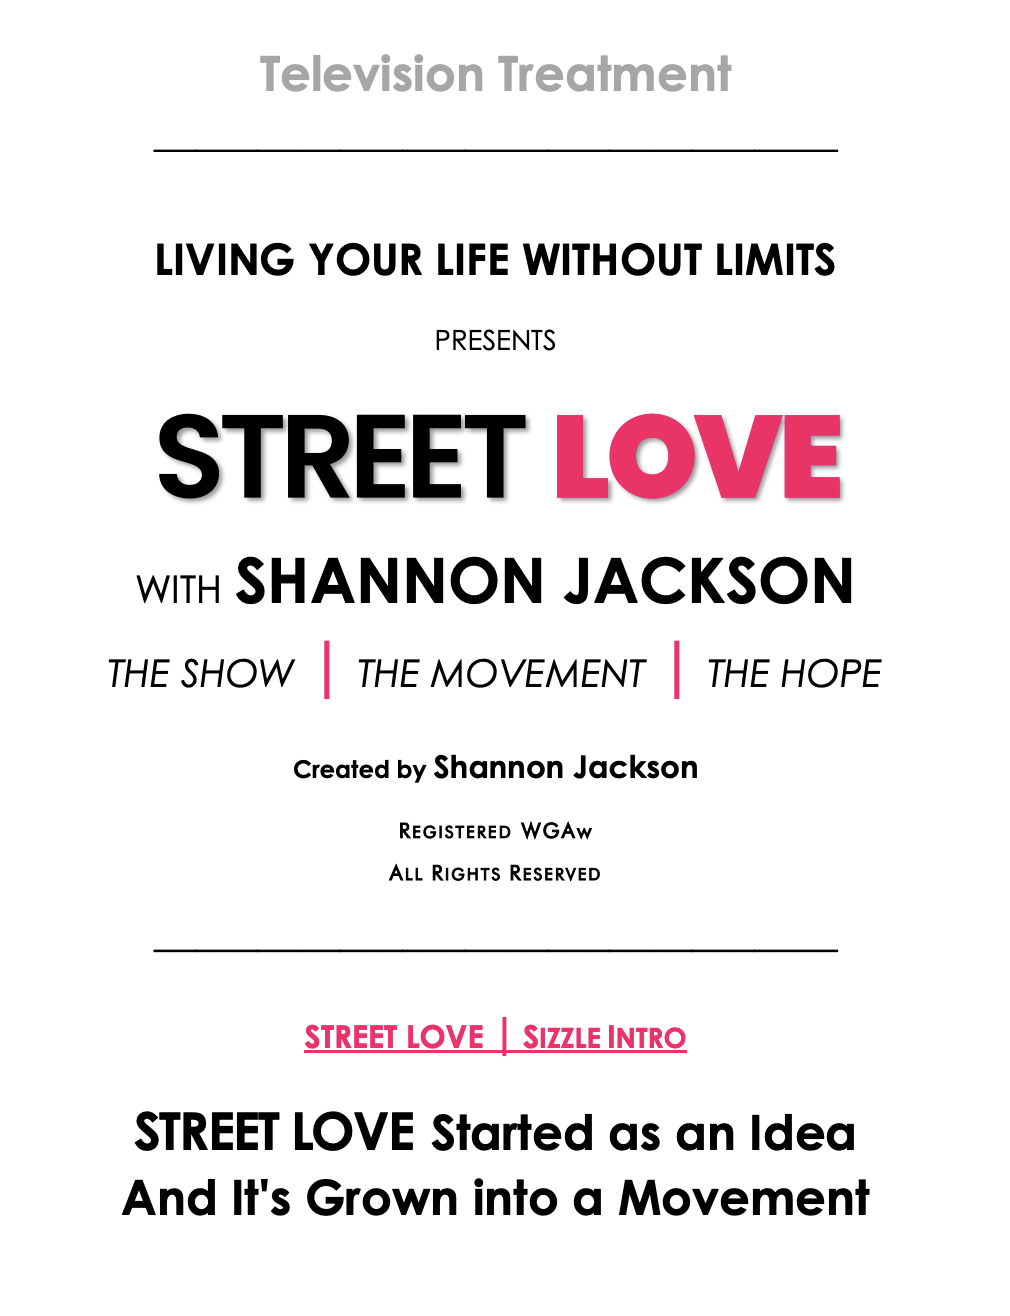 Indiegogo Campaign Launched For The Upcoming Street Love Web Series - Season 2